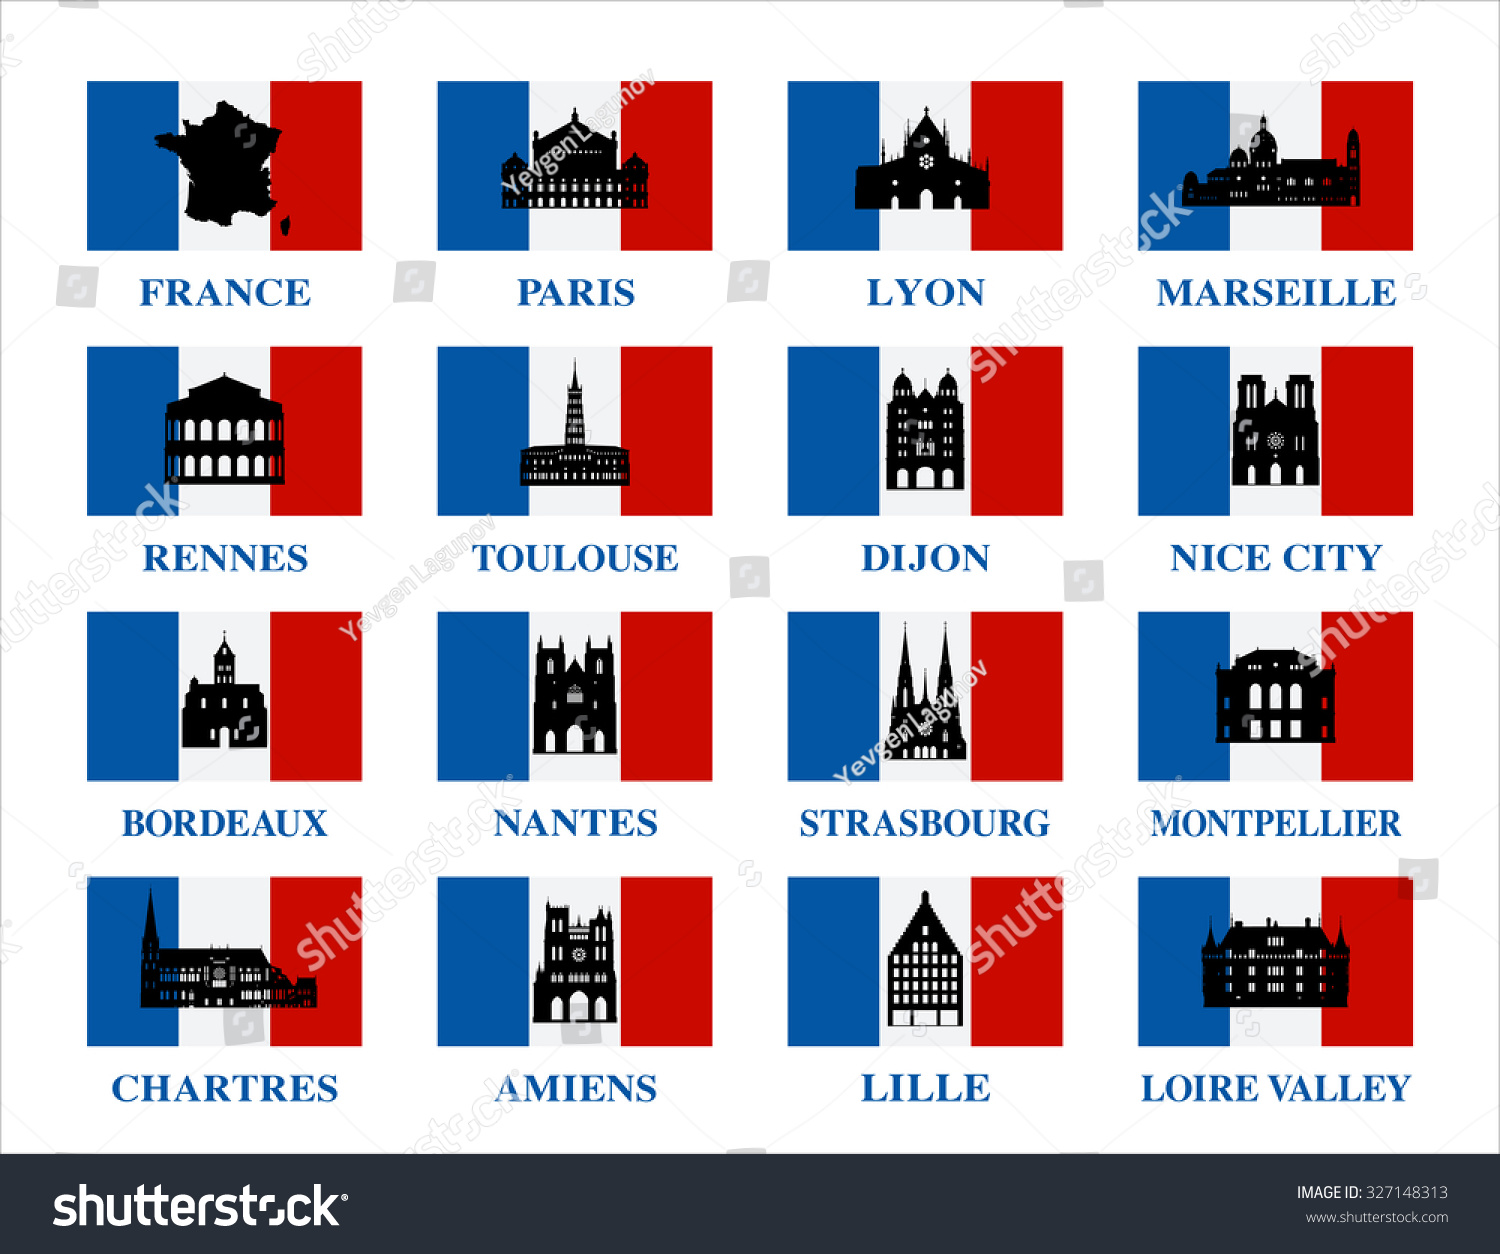 Vector symbols france famous places france stock vector 327148313 vector symbols of france famous places in france biocorpaavc